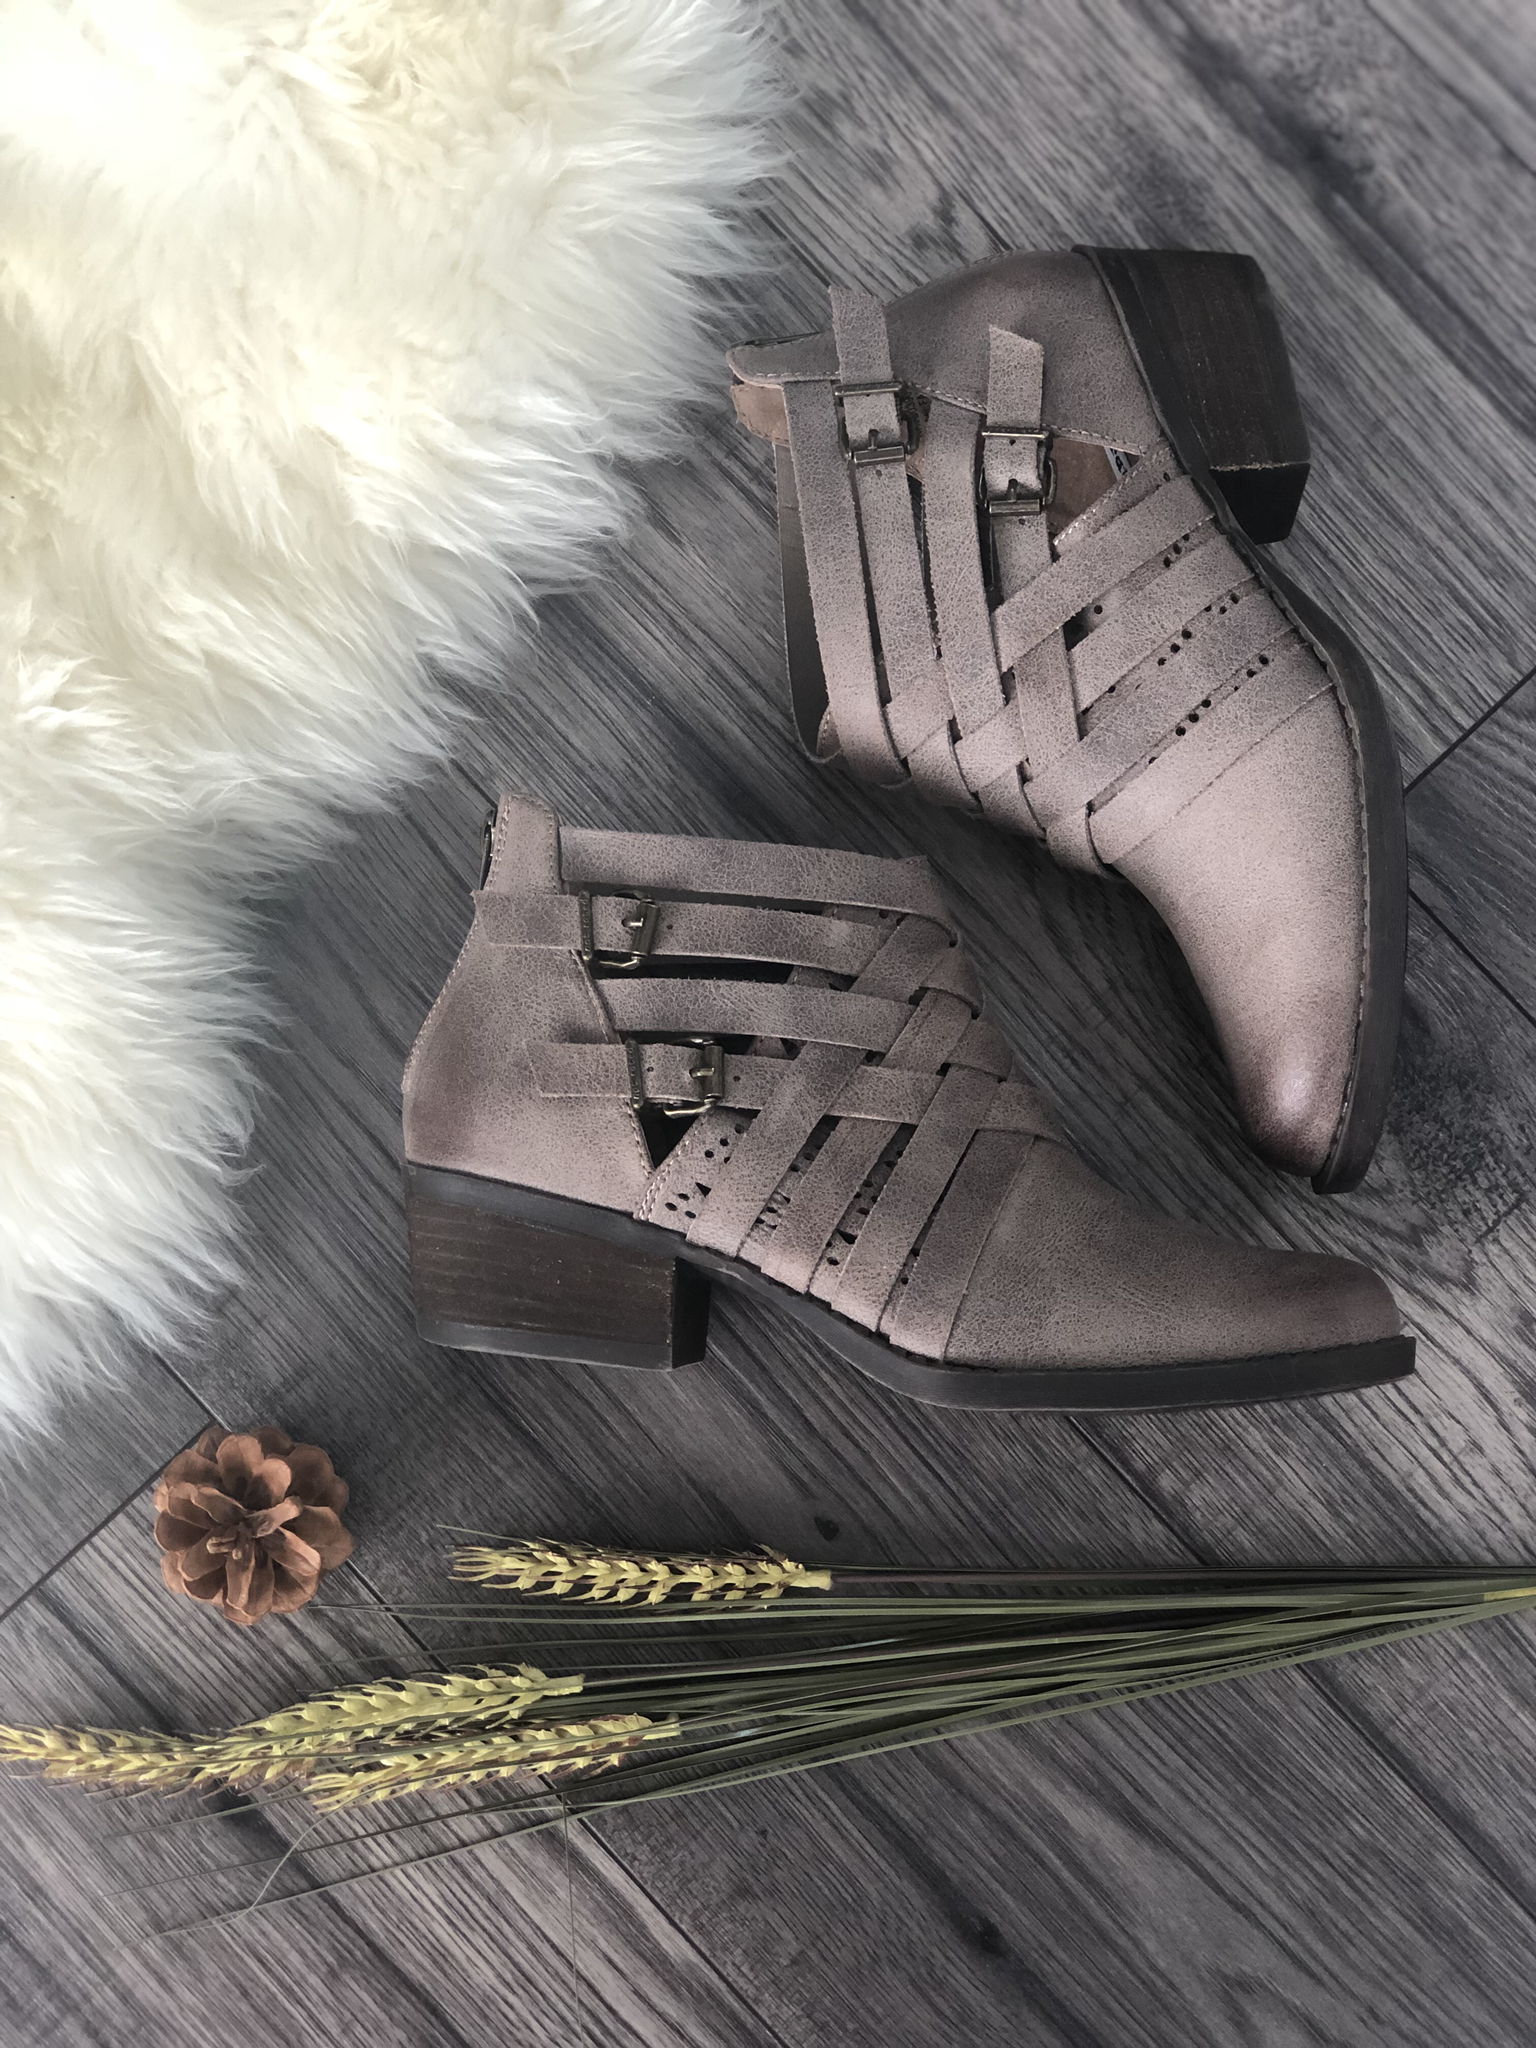 Strappy Bootie - 1 Size 6 Left 99999896